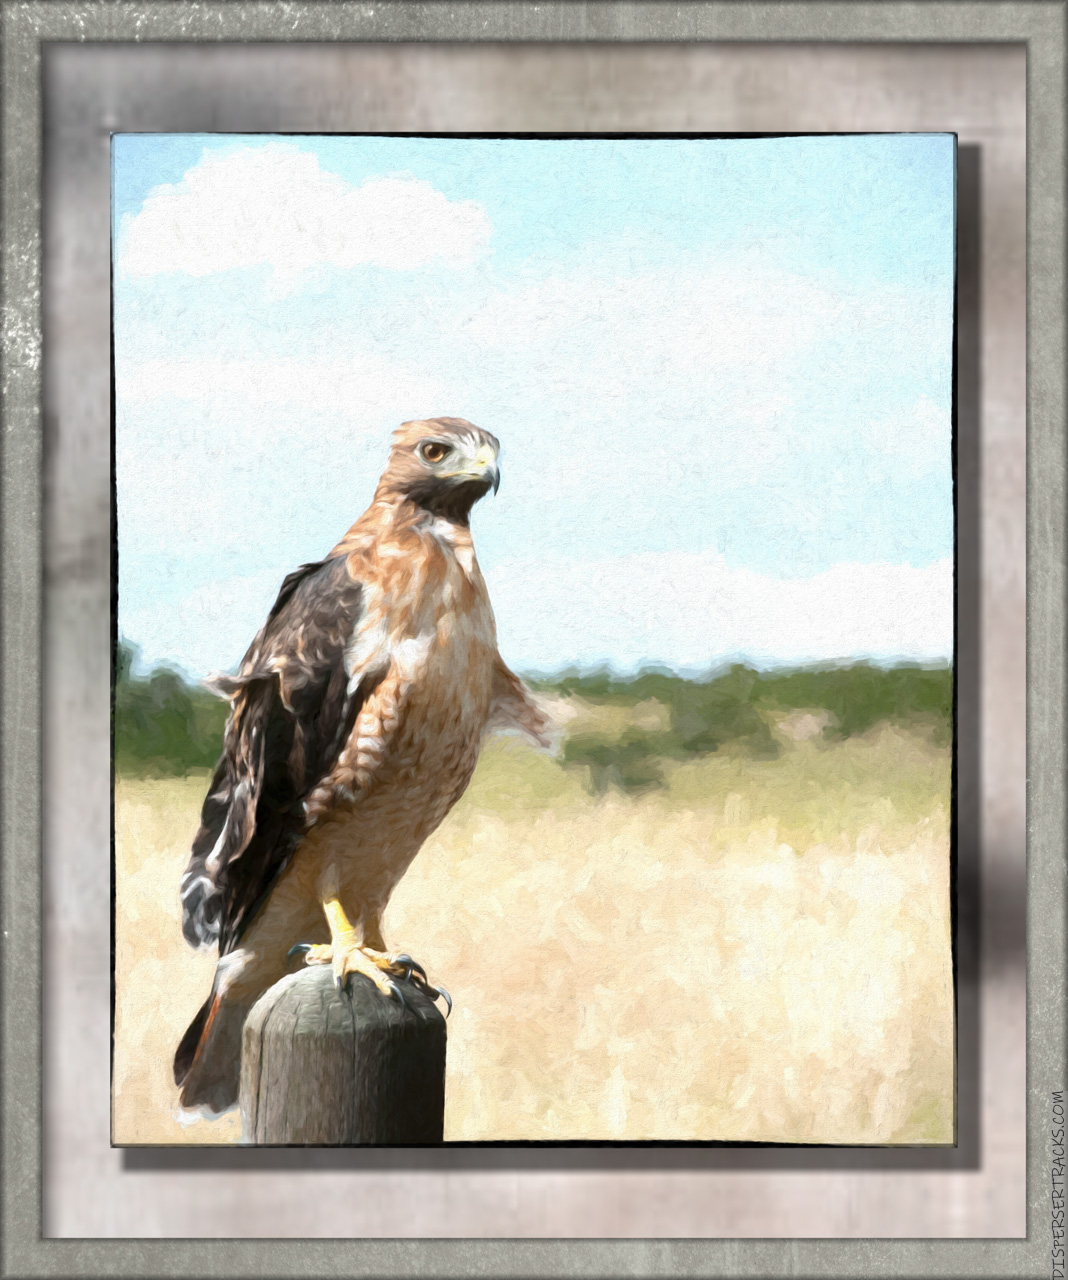 Red-tailed hawk perched on fencepost